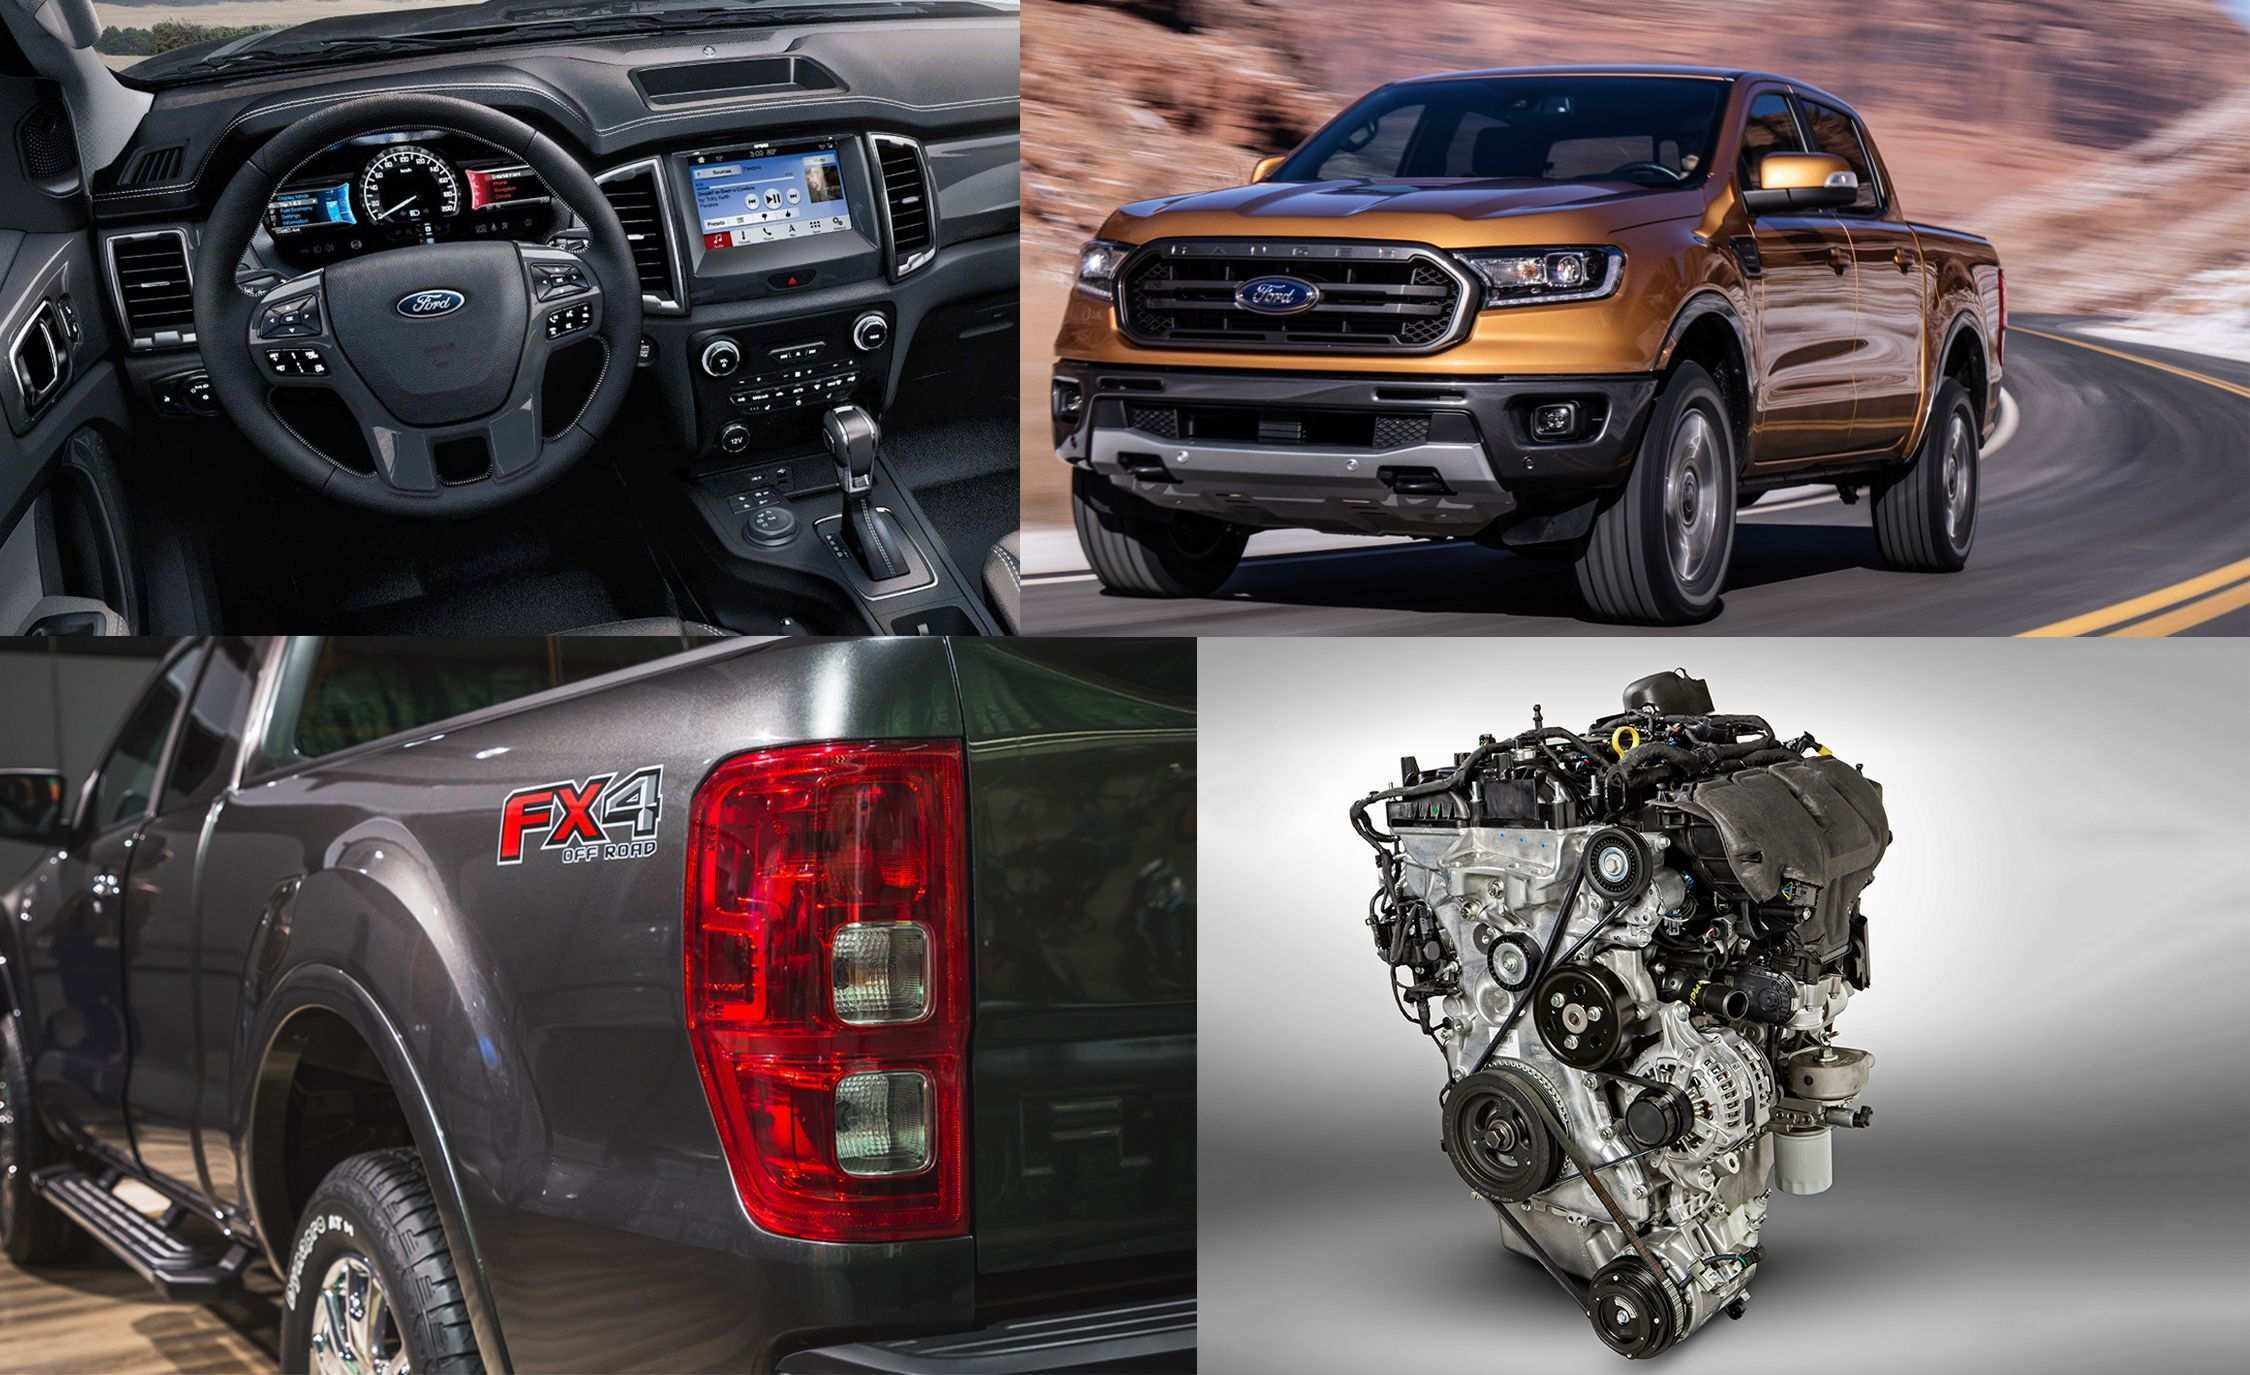 27 The Best 2019 Ford Ranger Engine Options Speed Test